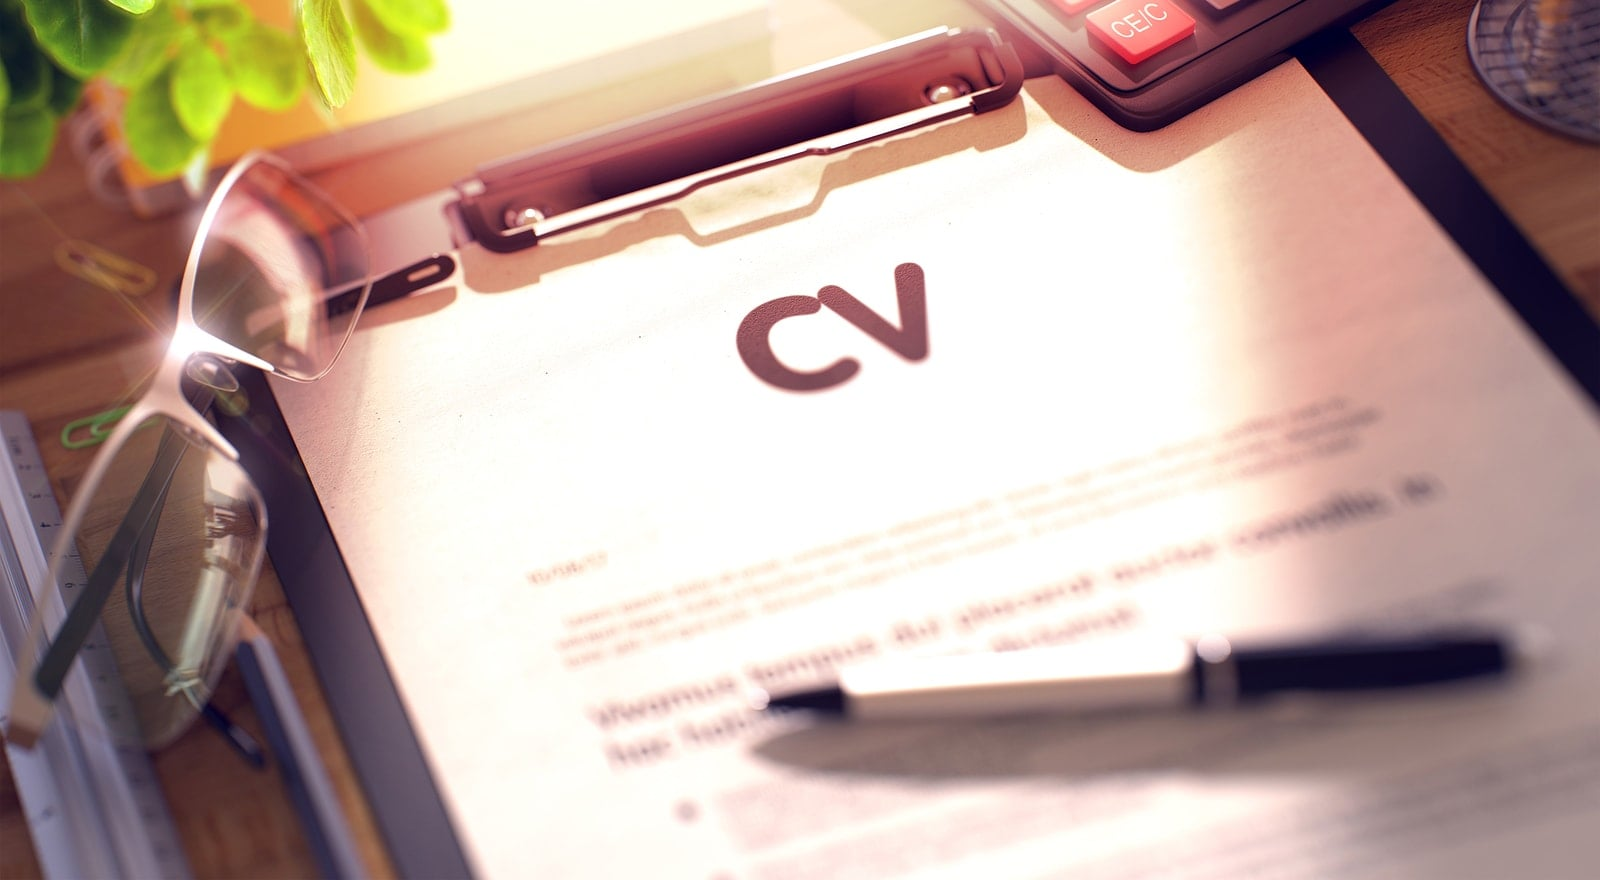 Cv writing tips min